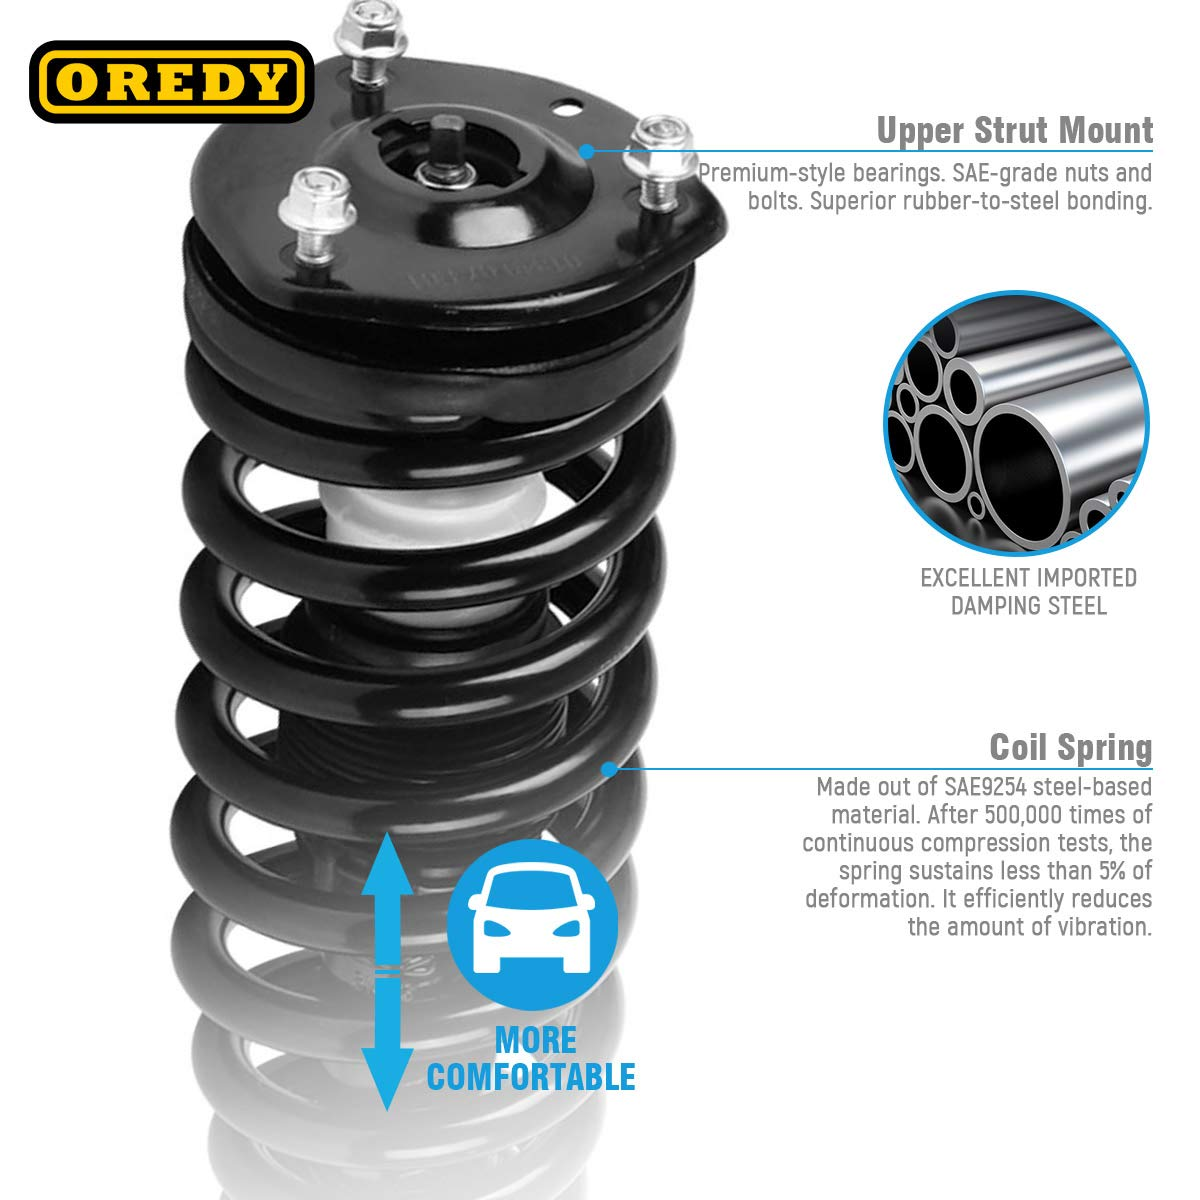 OREDY Front Pair Struts Assembly Complete Assembly Shock Absorber Compatible with Mazda 6 2003 2004 2005 2006 2007 2008#172195 11990 55S11990 1335543L 1335543R 9213-0104 172261 172596 D172263